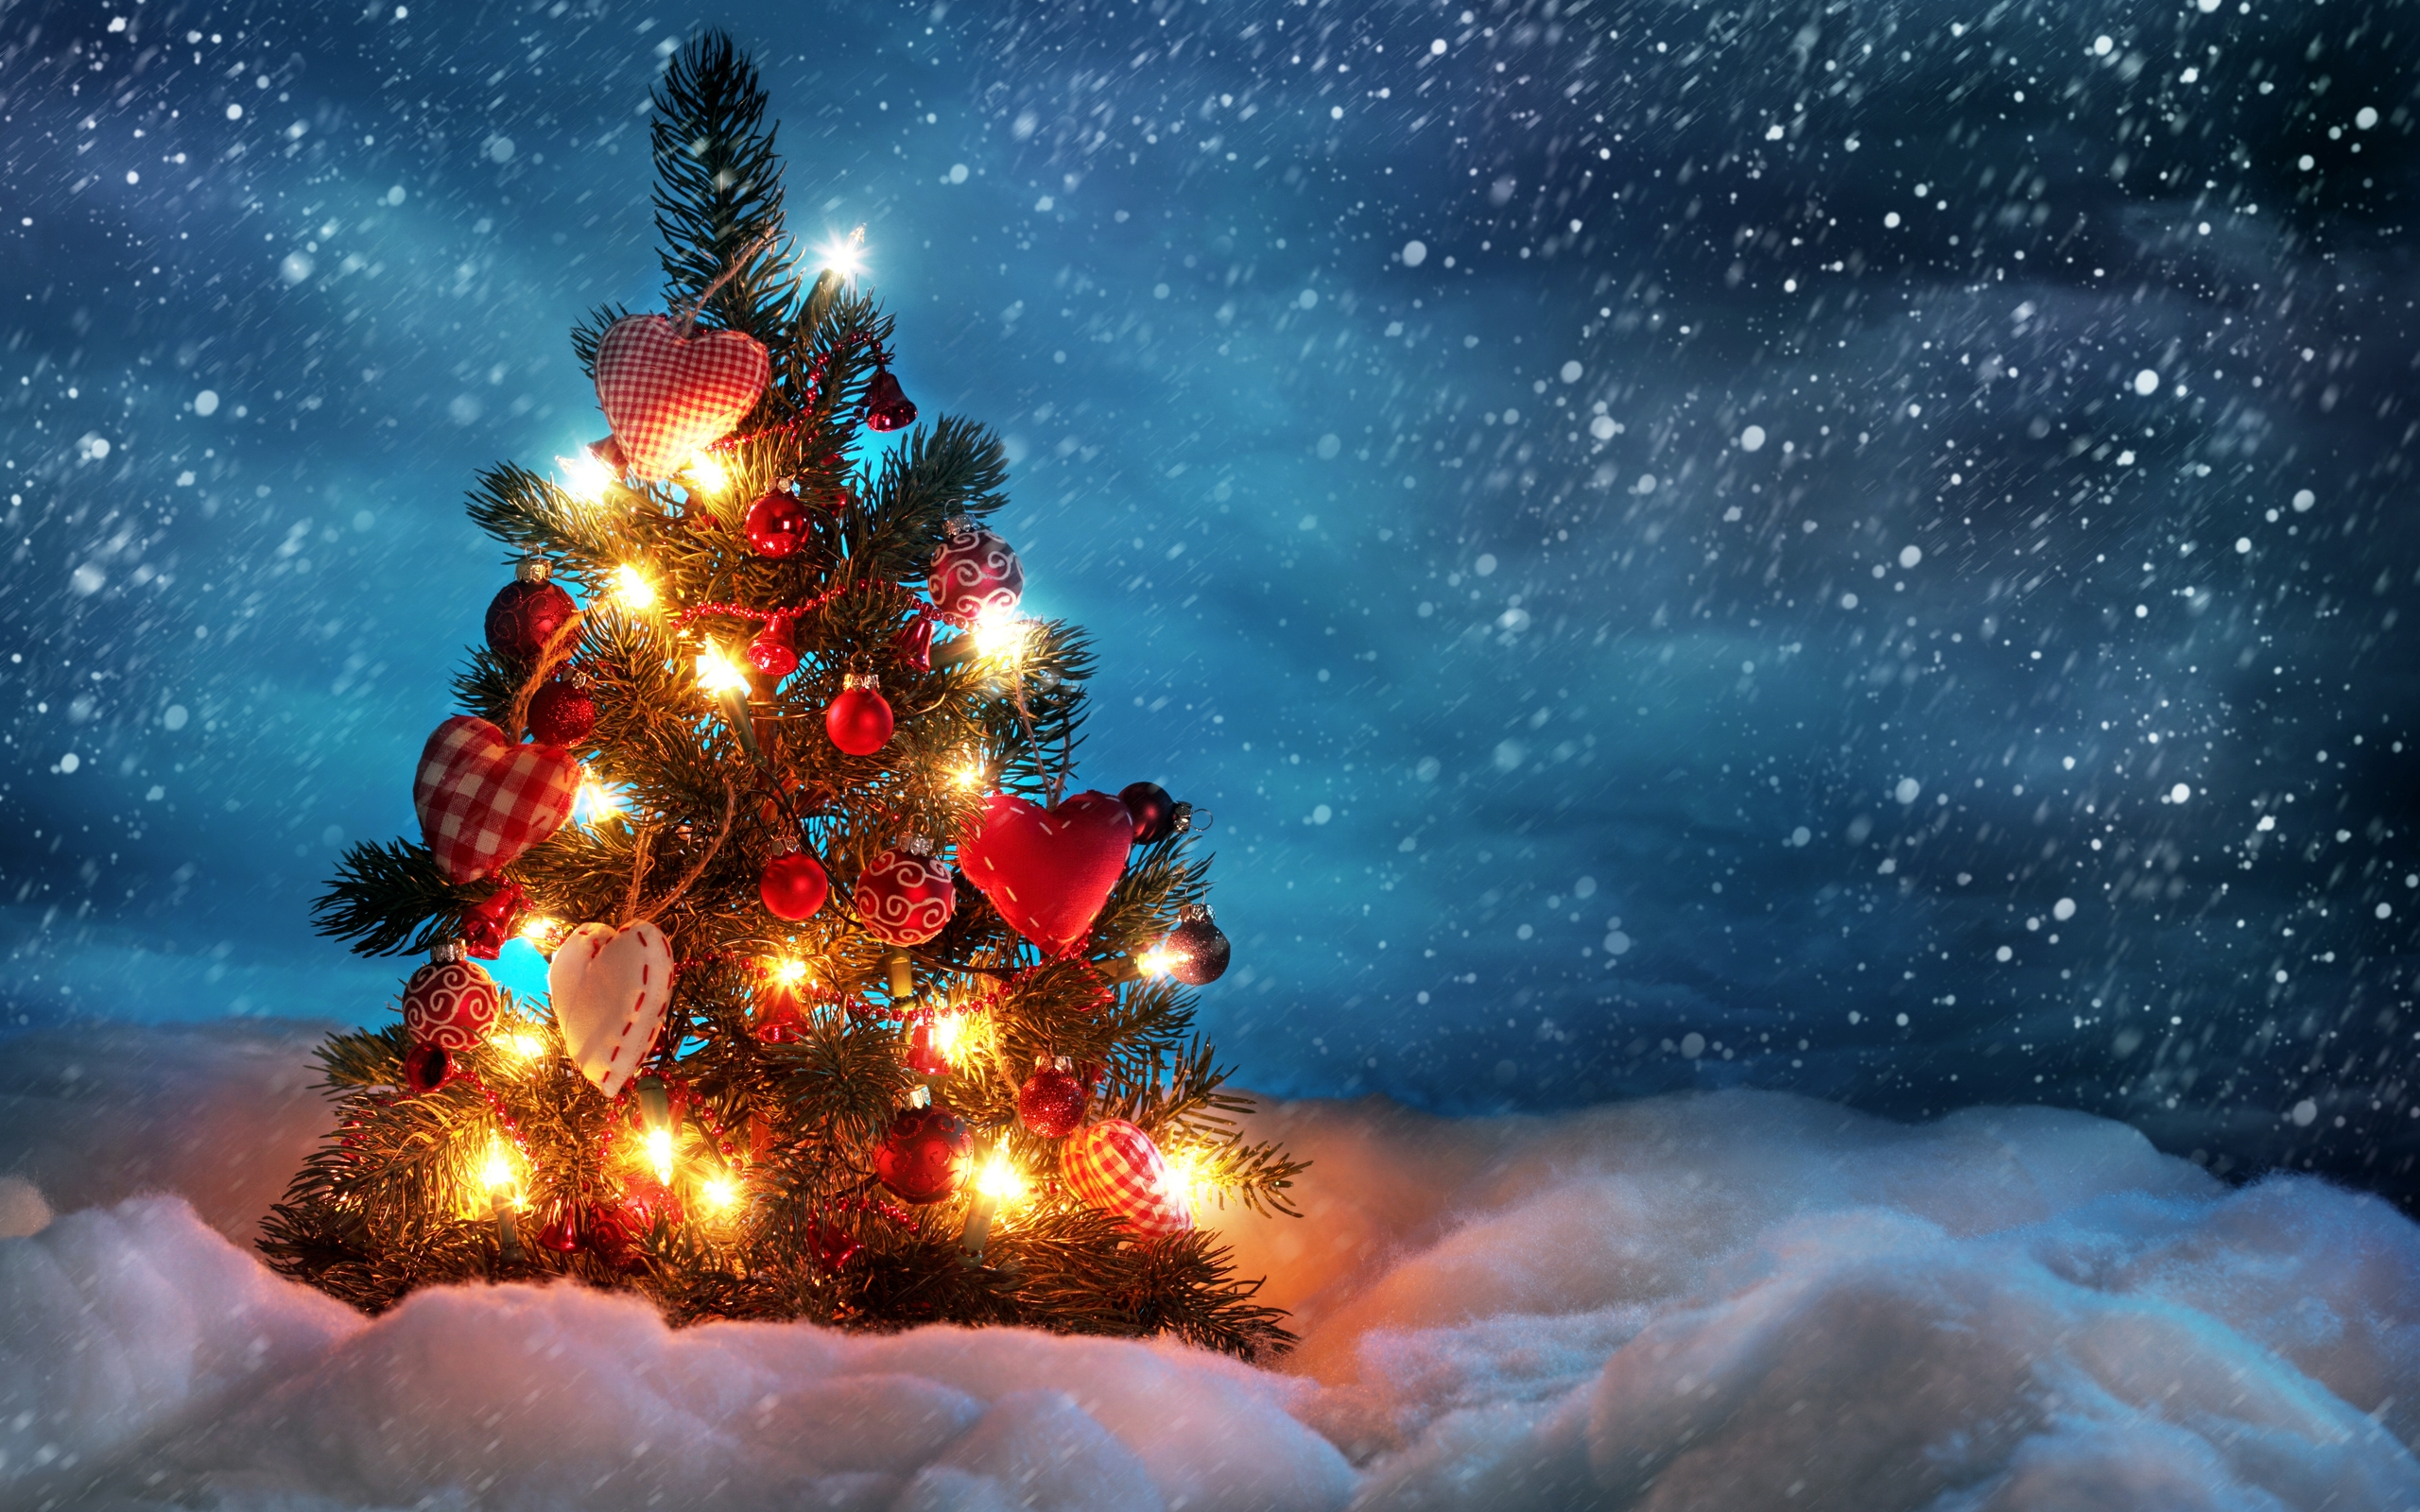 Essential Christmas Desktop Wallpapers for 2013